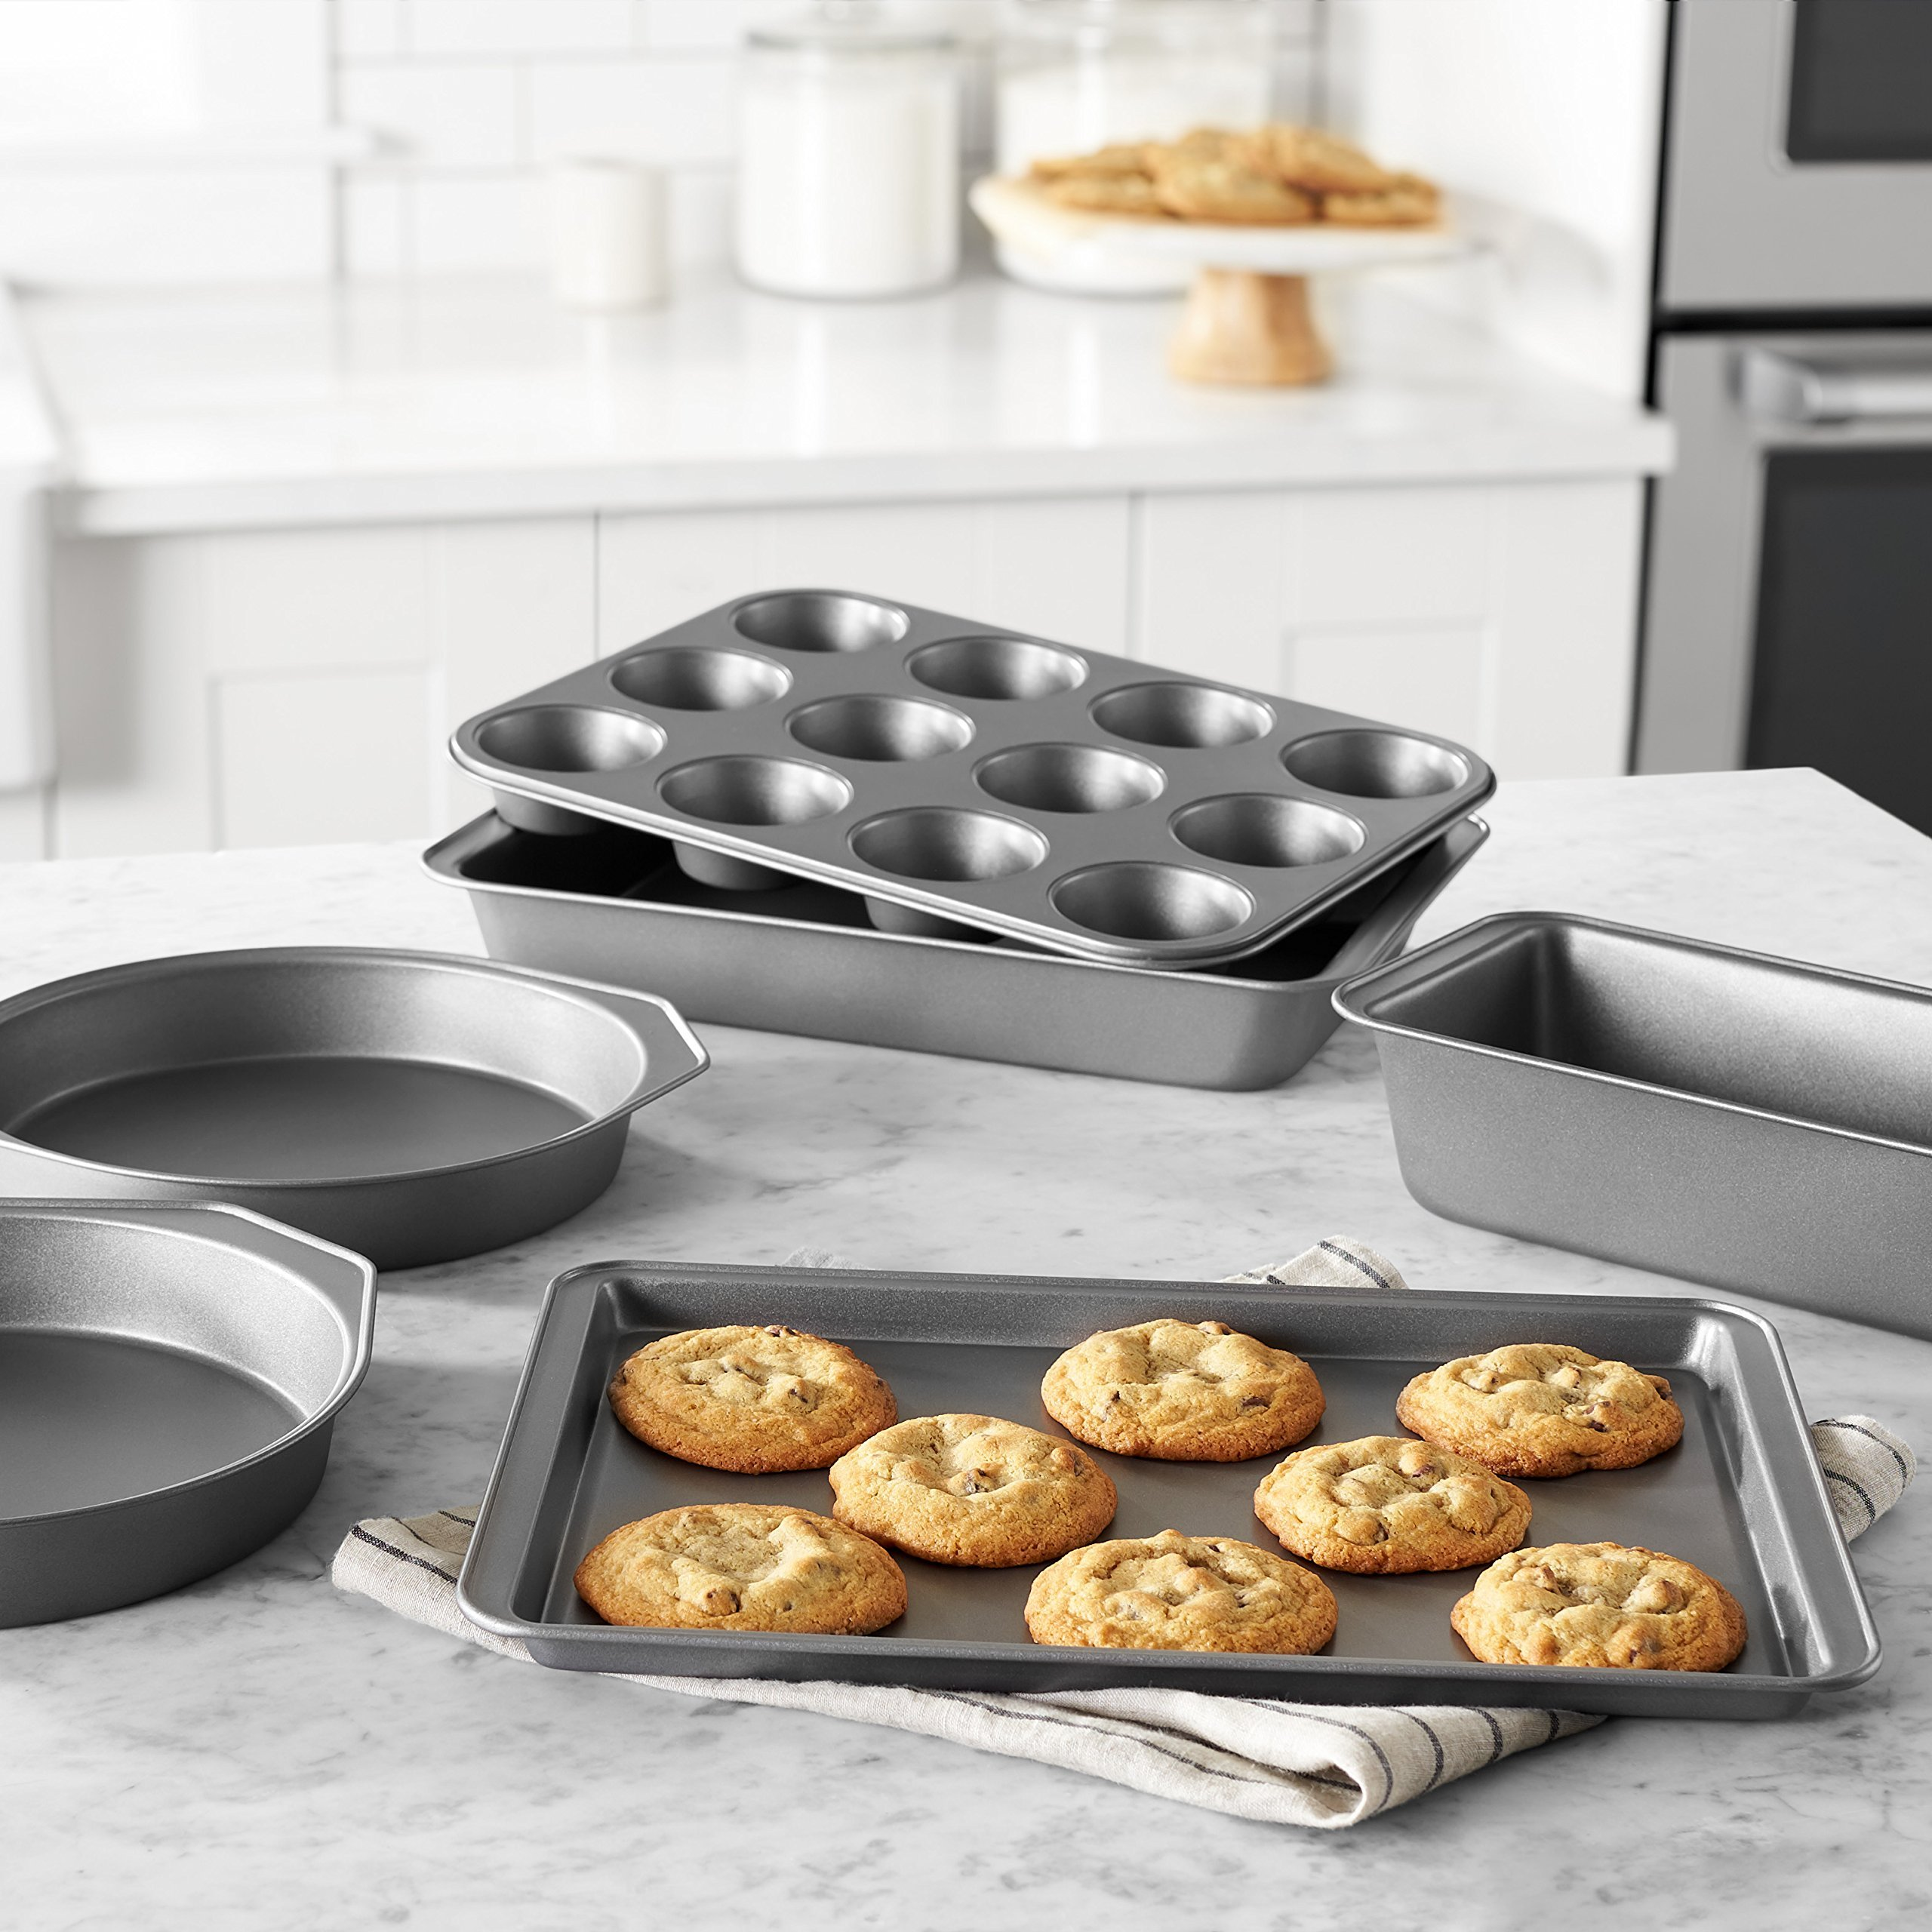 AmazonBasics 6-Piece Nonstick Bakeware Set by AmazonBasics (Image #2)